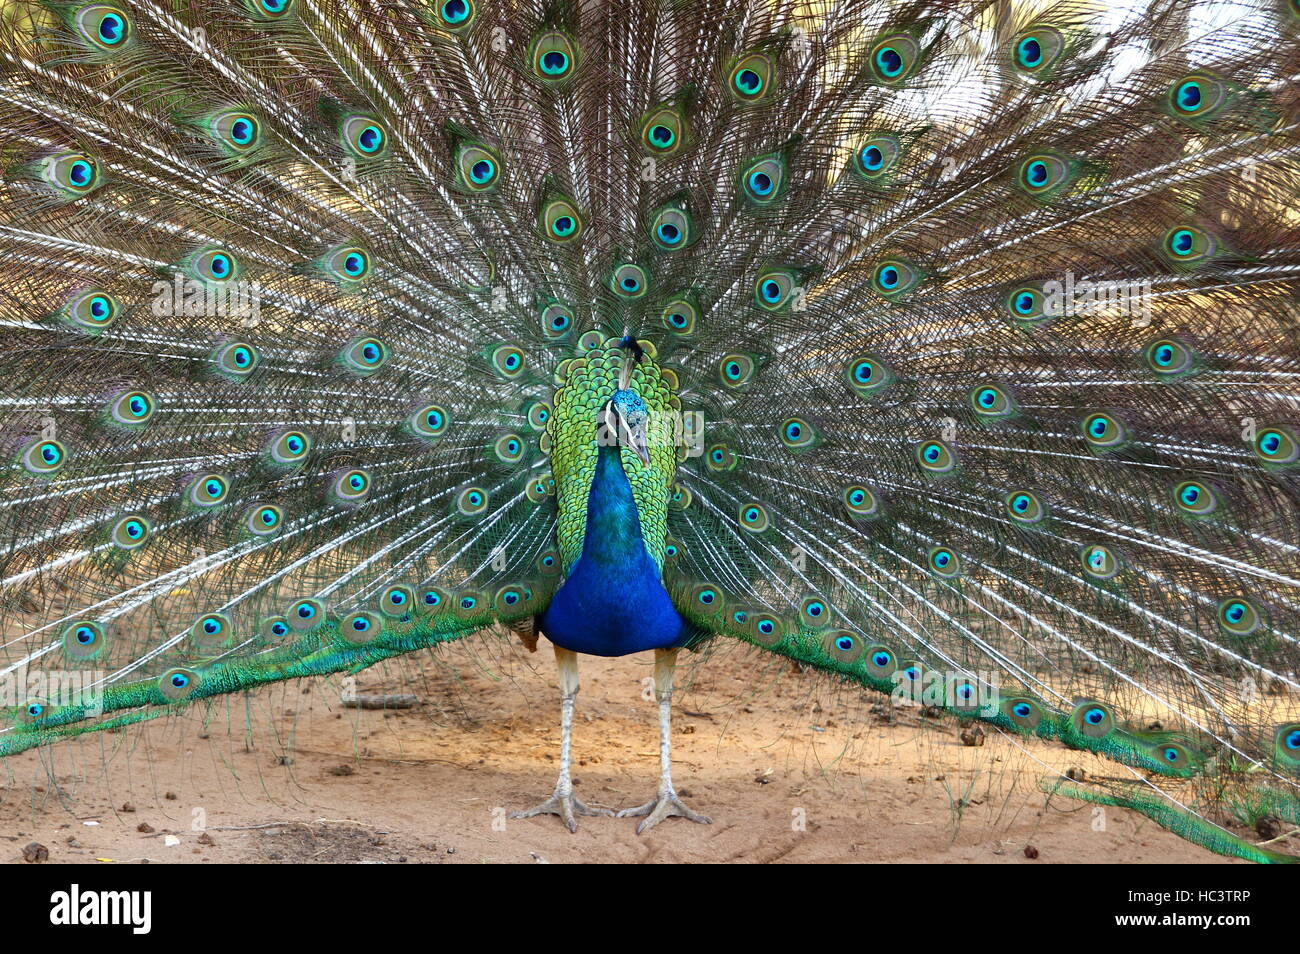 Peacock's ostentation - Stock Image